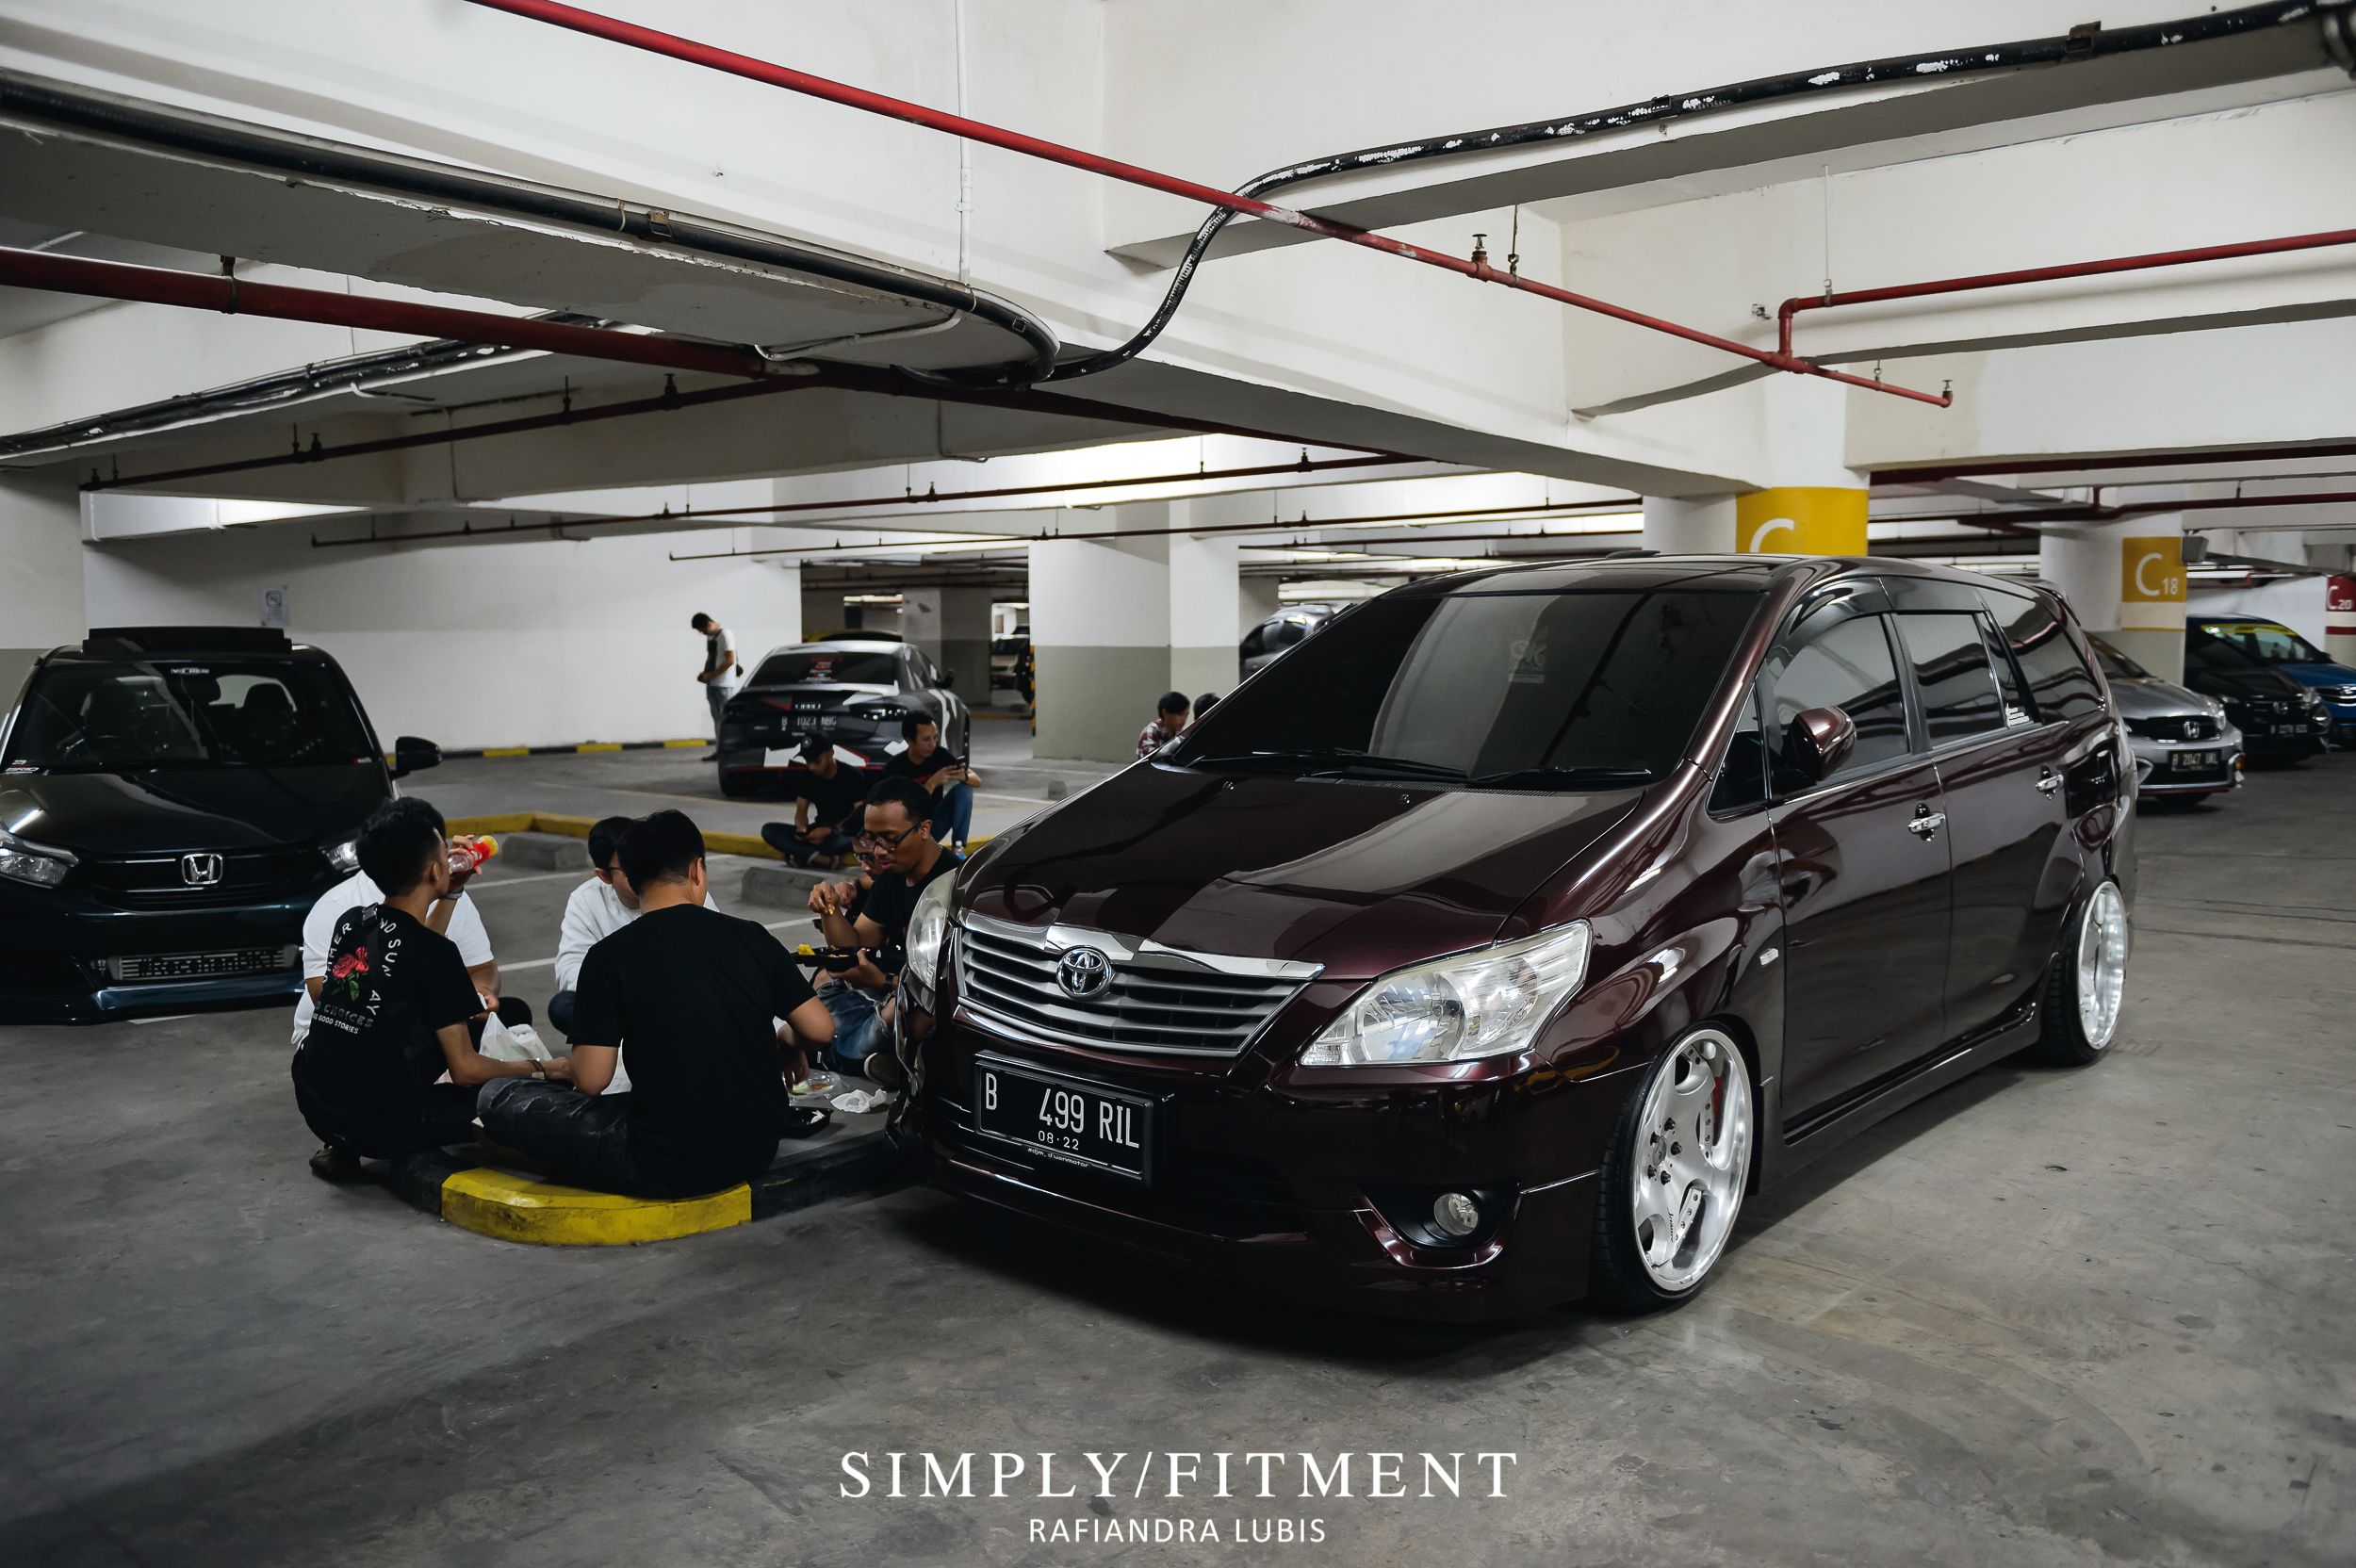 LOWFITMENT DAY 5